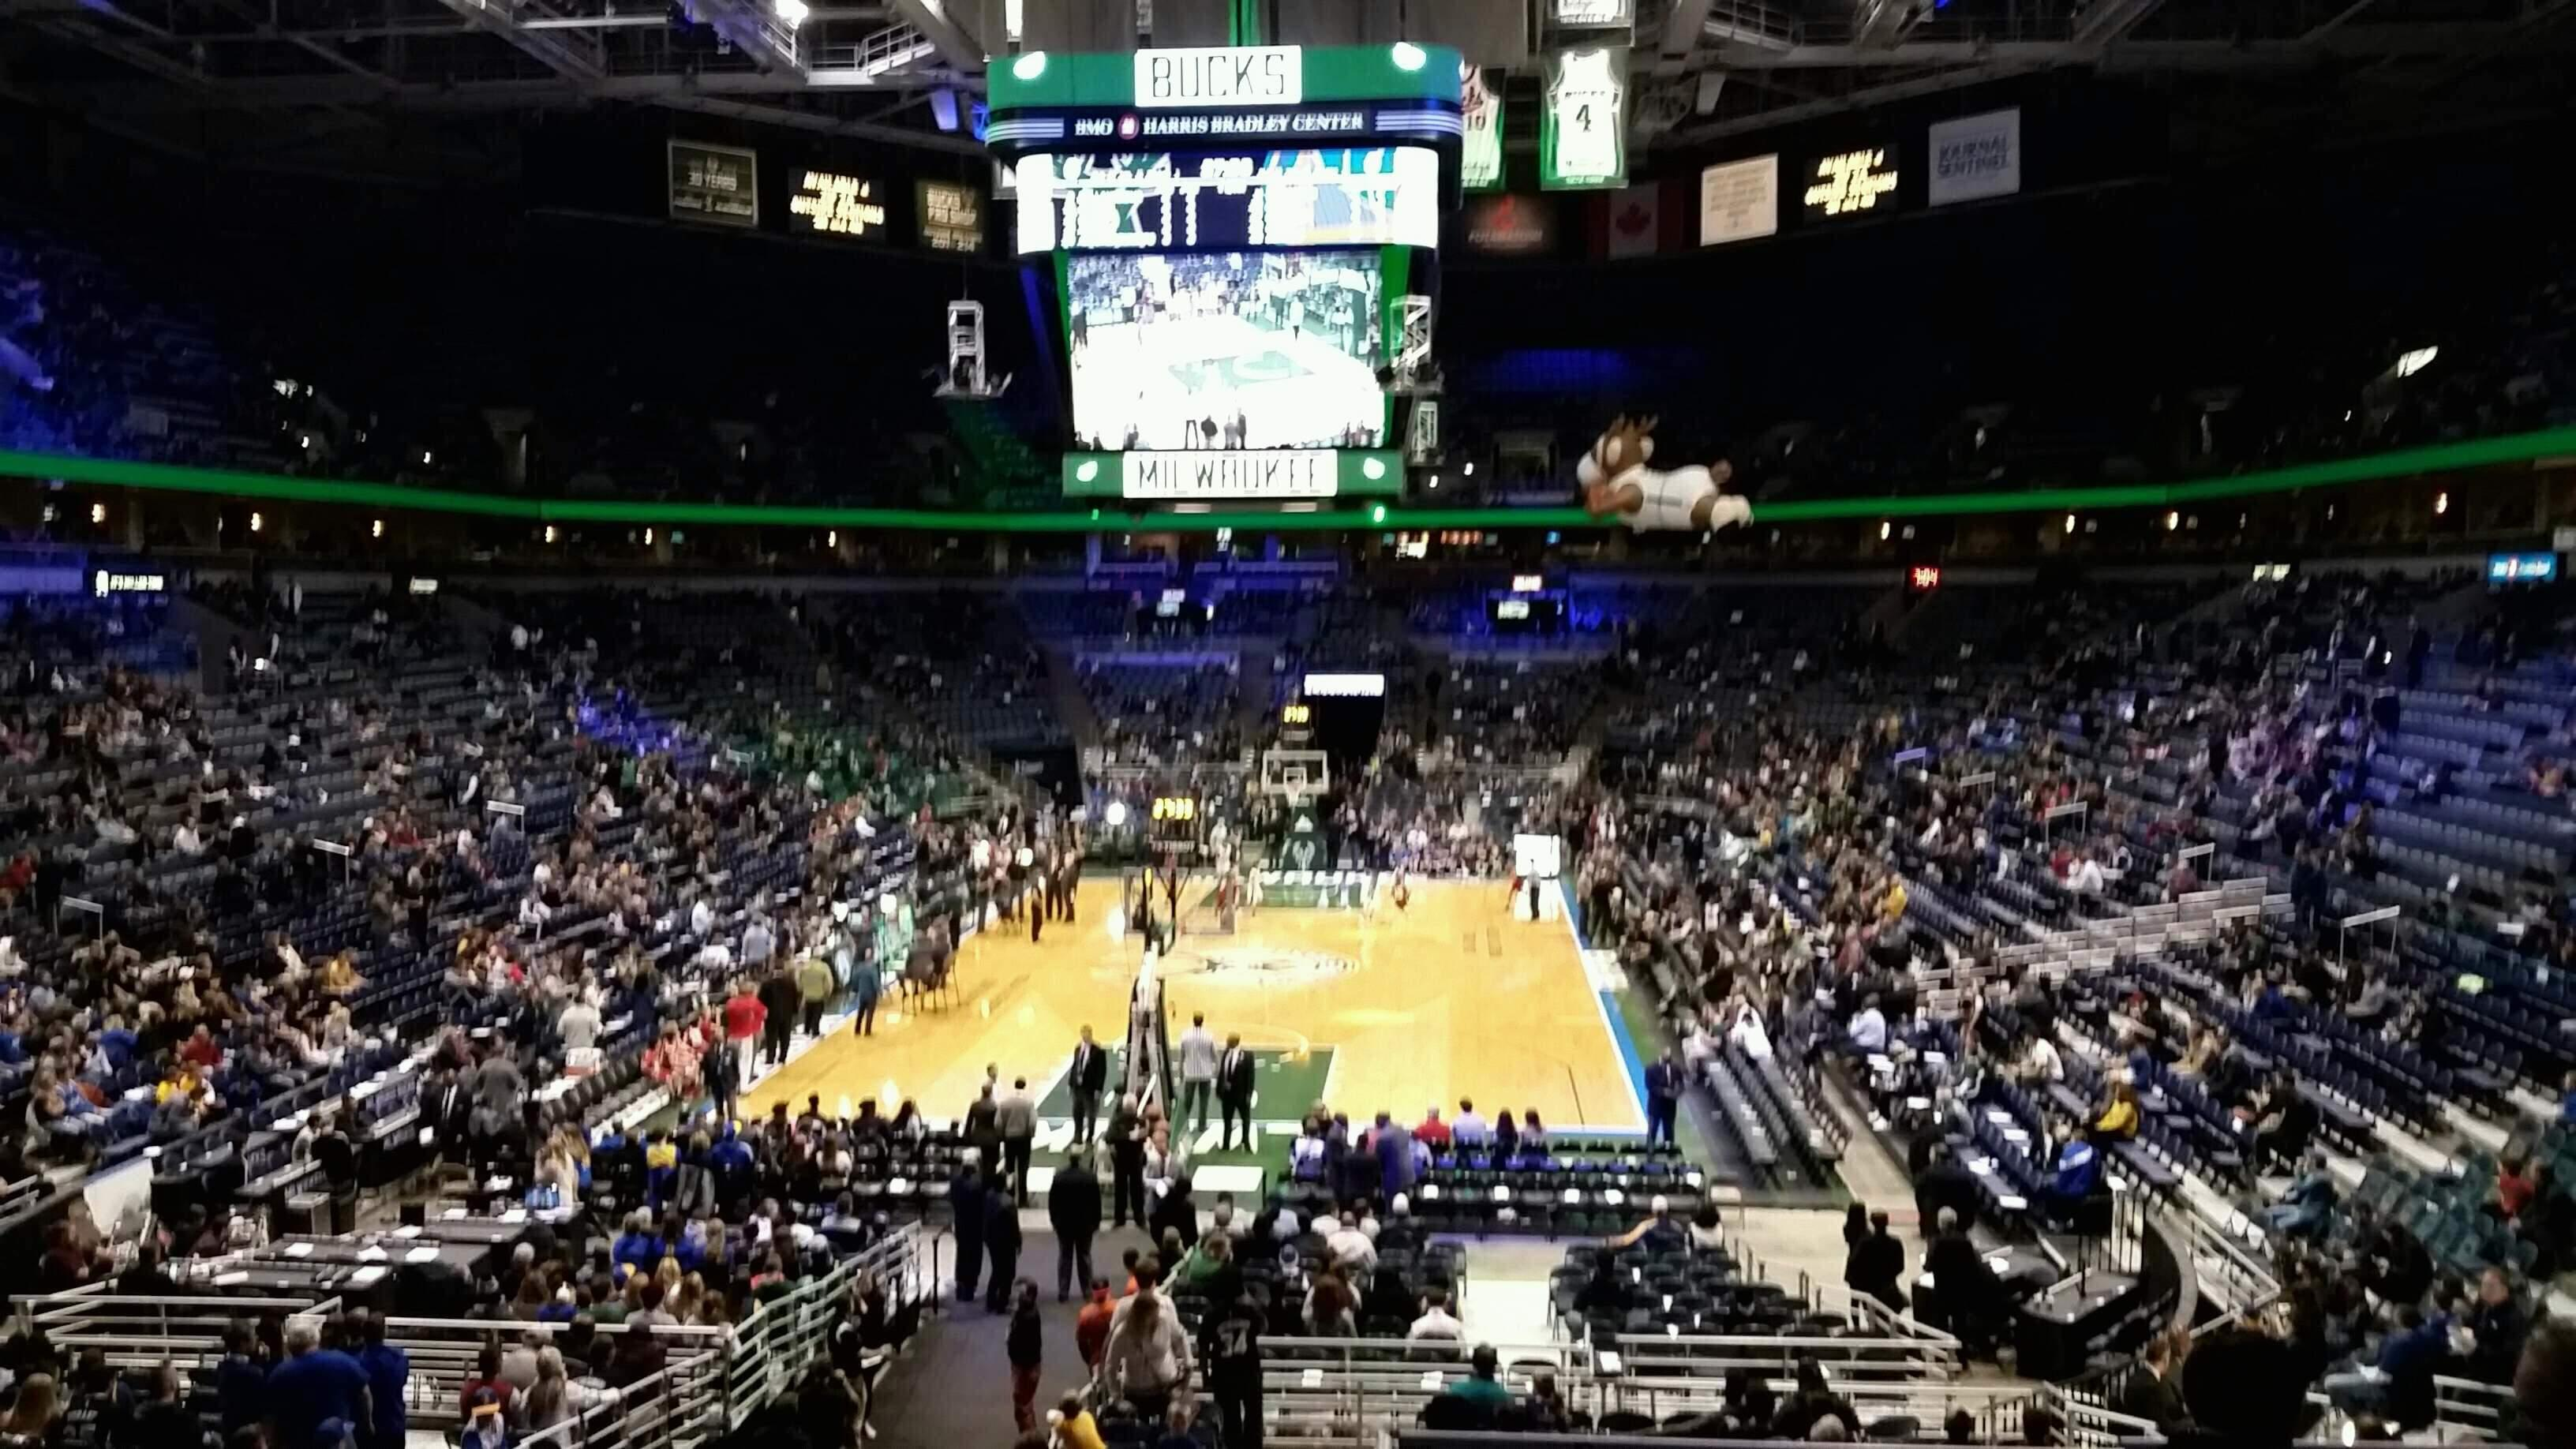 BMO Harris Bradley Center Section 221 Row Y Seat 3